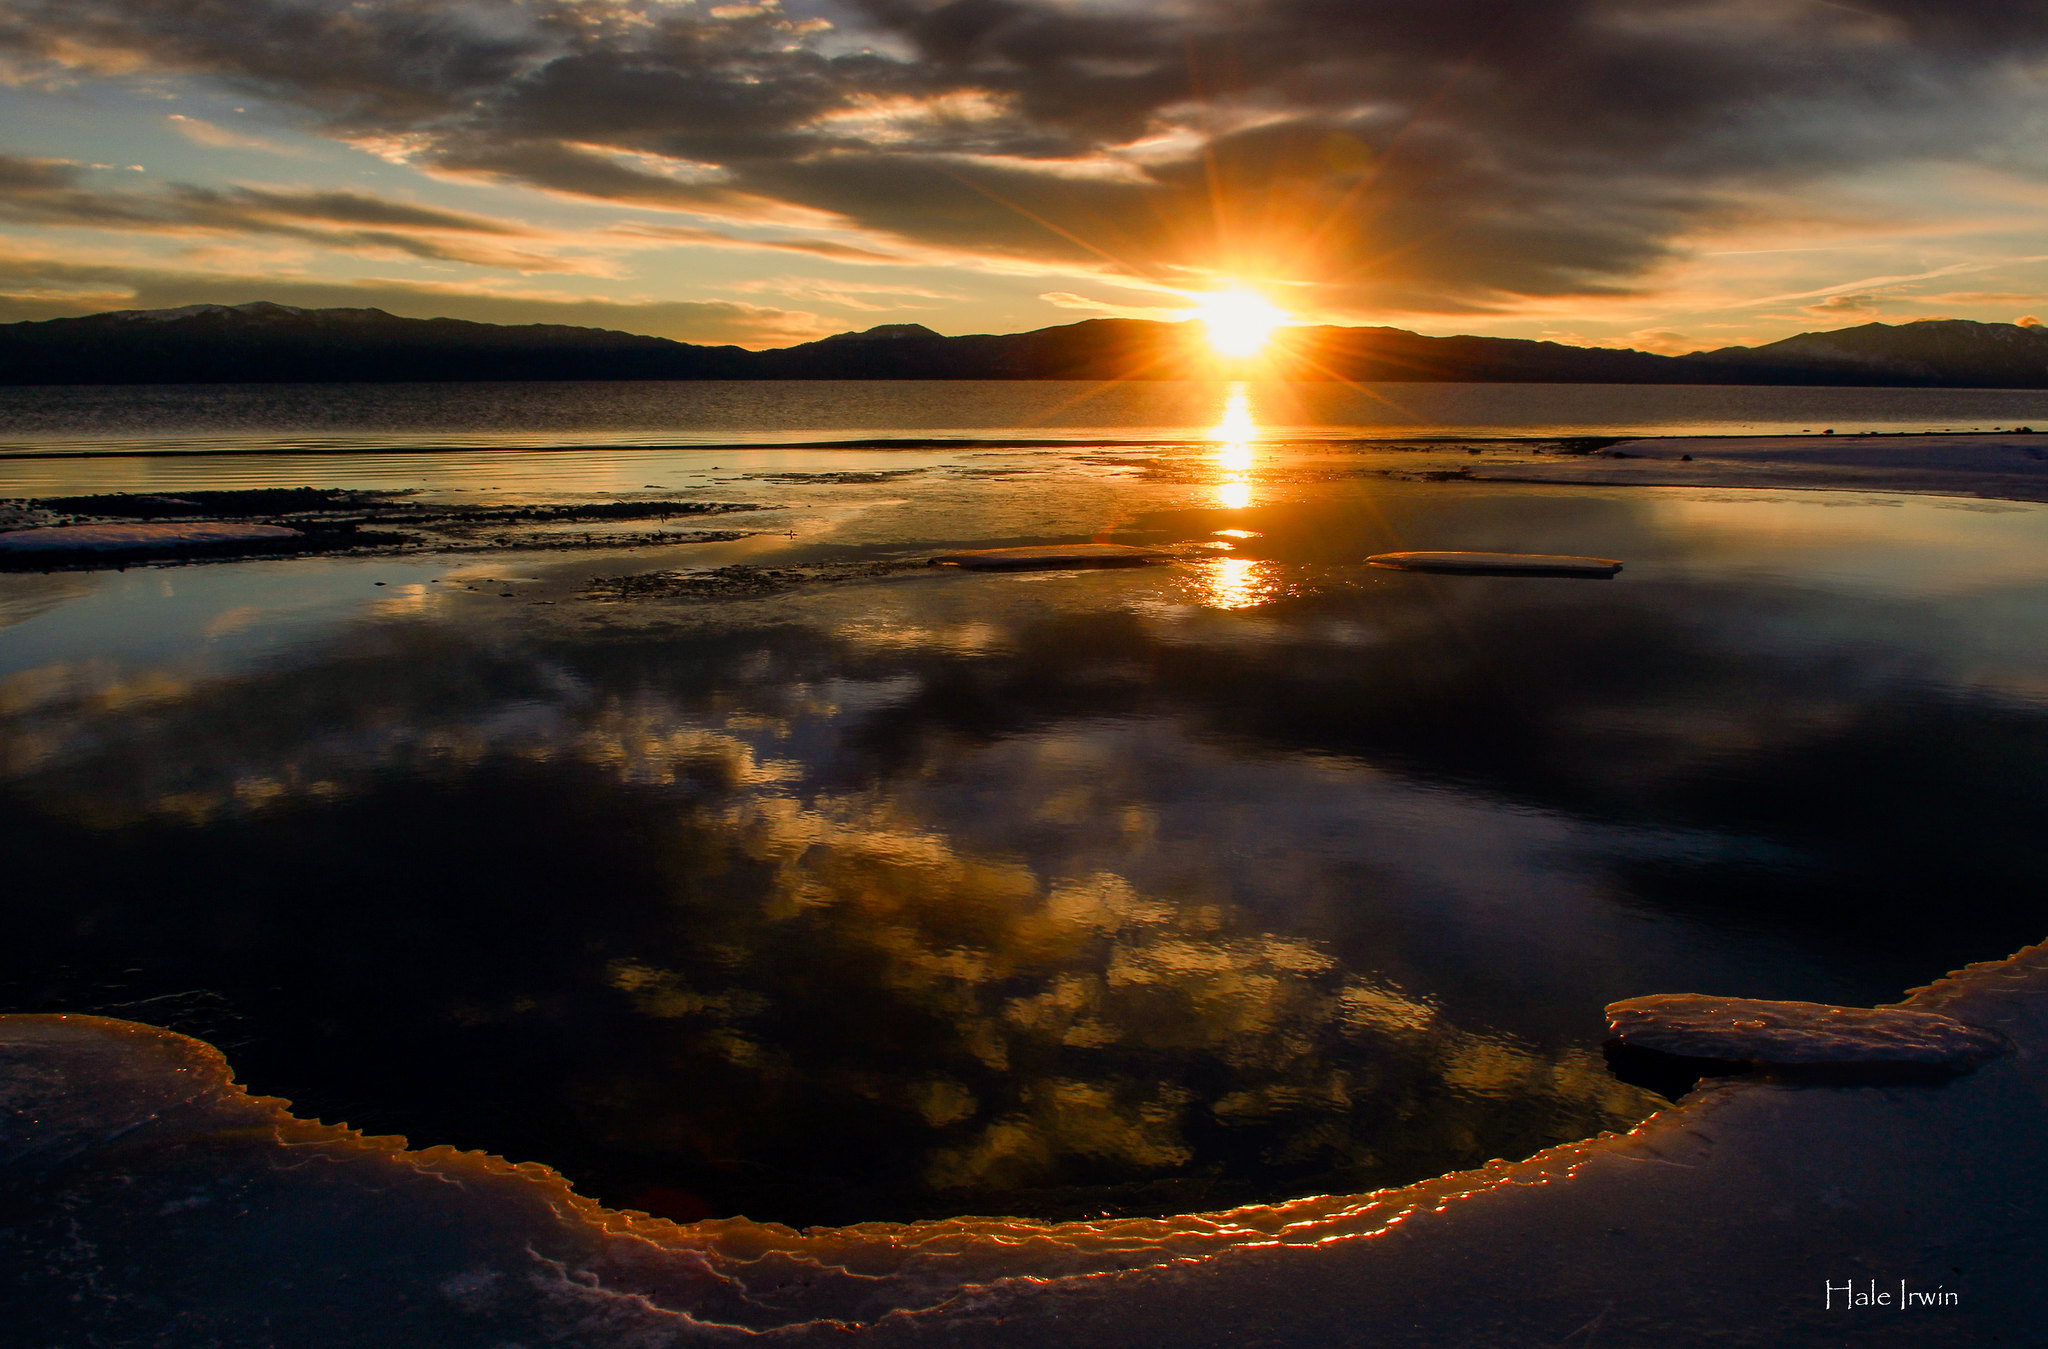 sunrise, lake tahoe